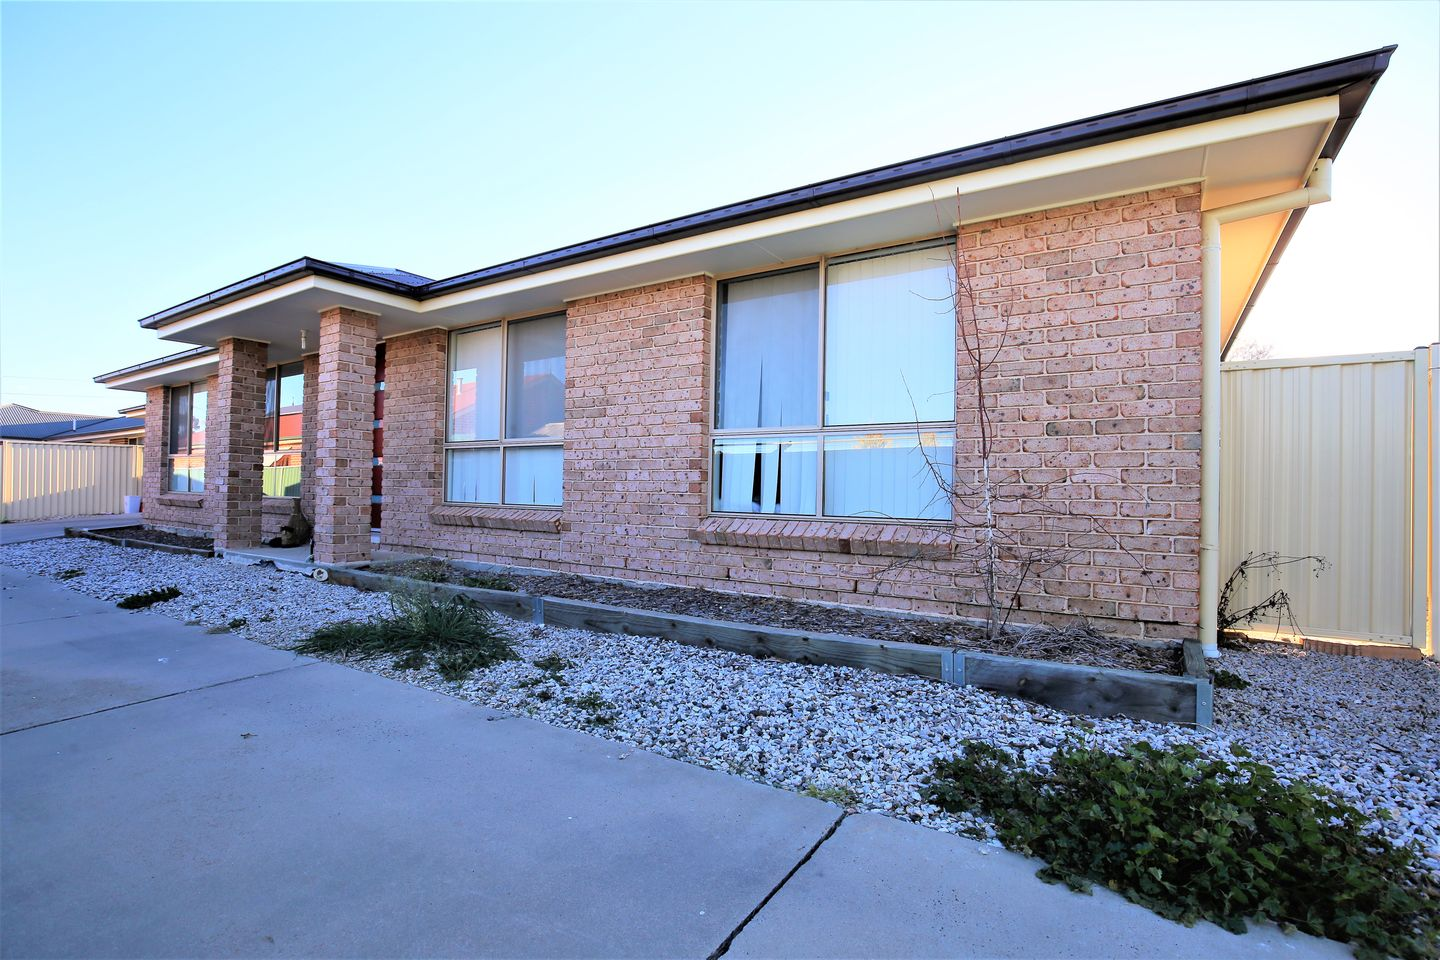 Upcoming Up Property Auctions